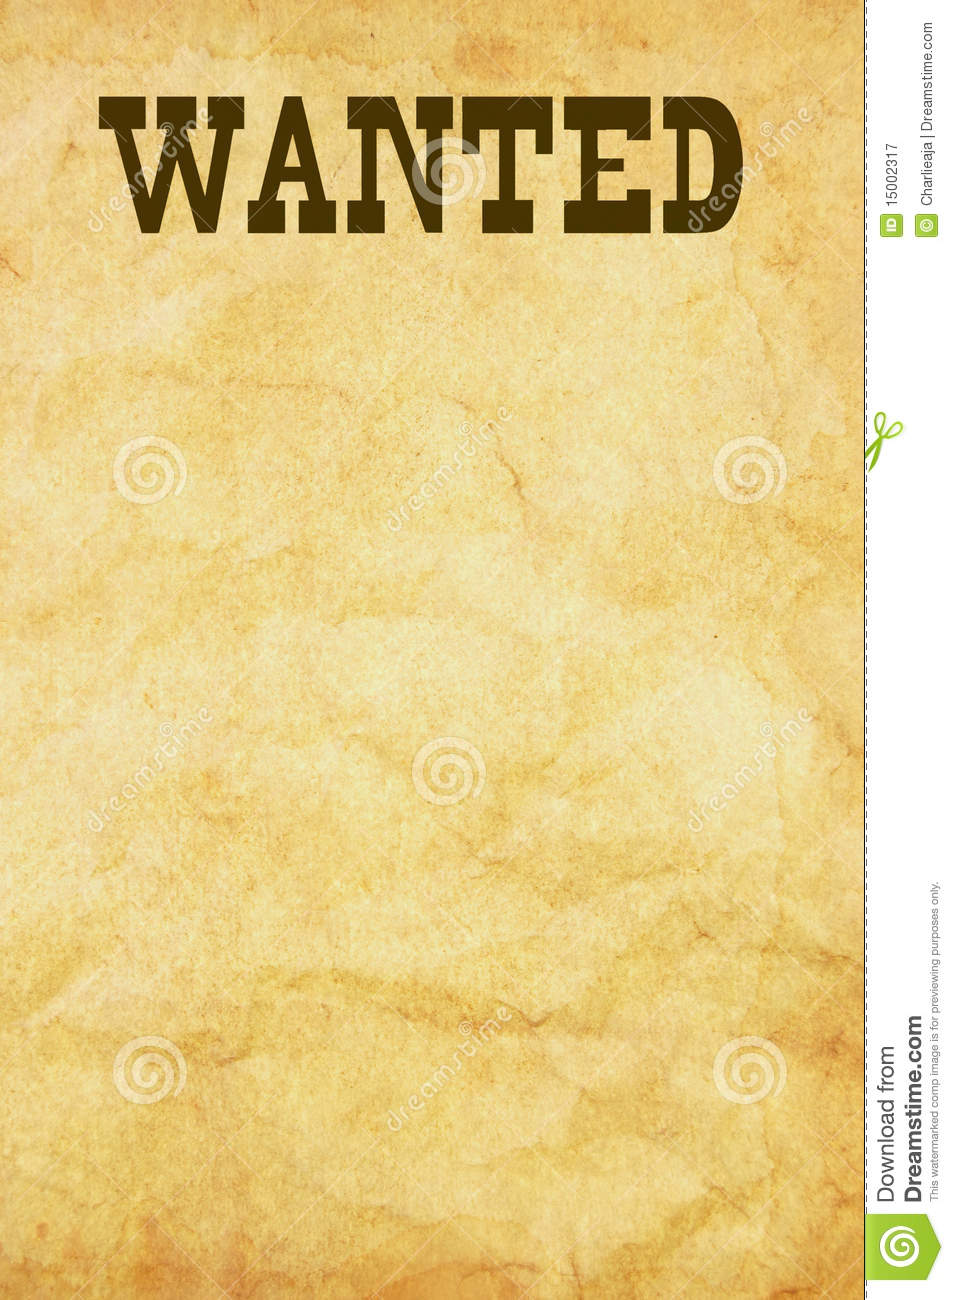 23671143cb Wanted poster stock illustration. Illustration of advert - 15002317